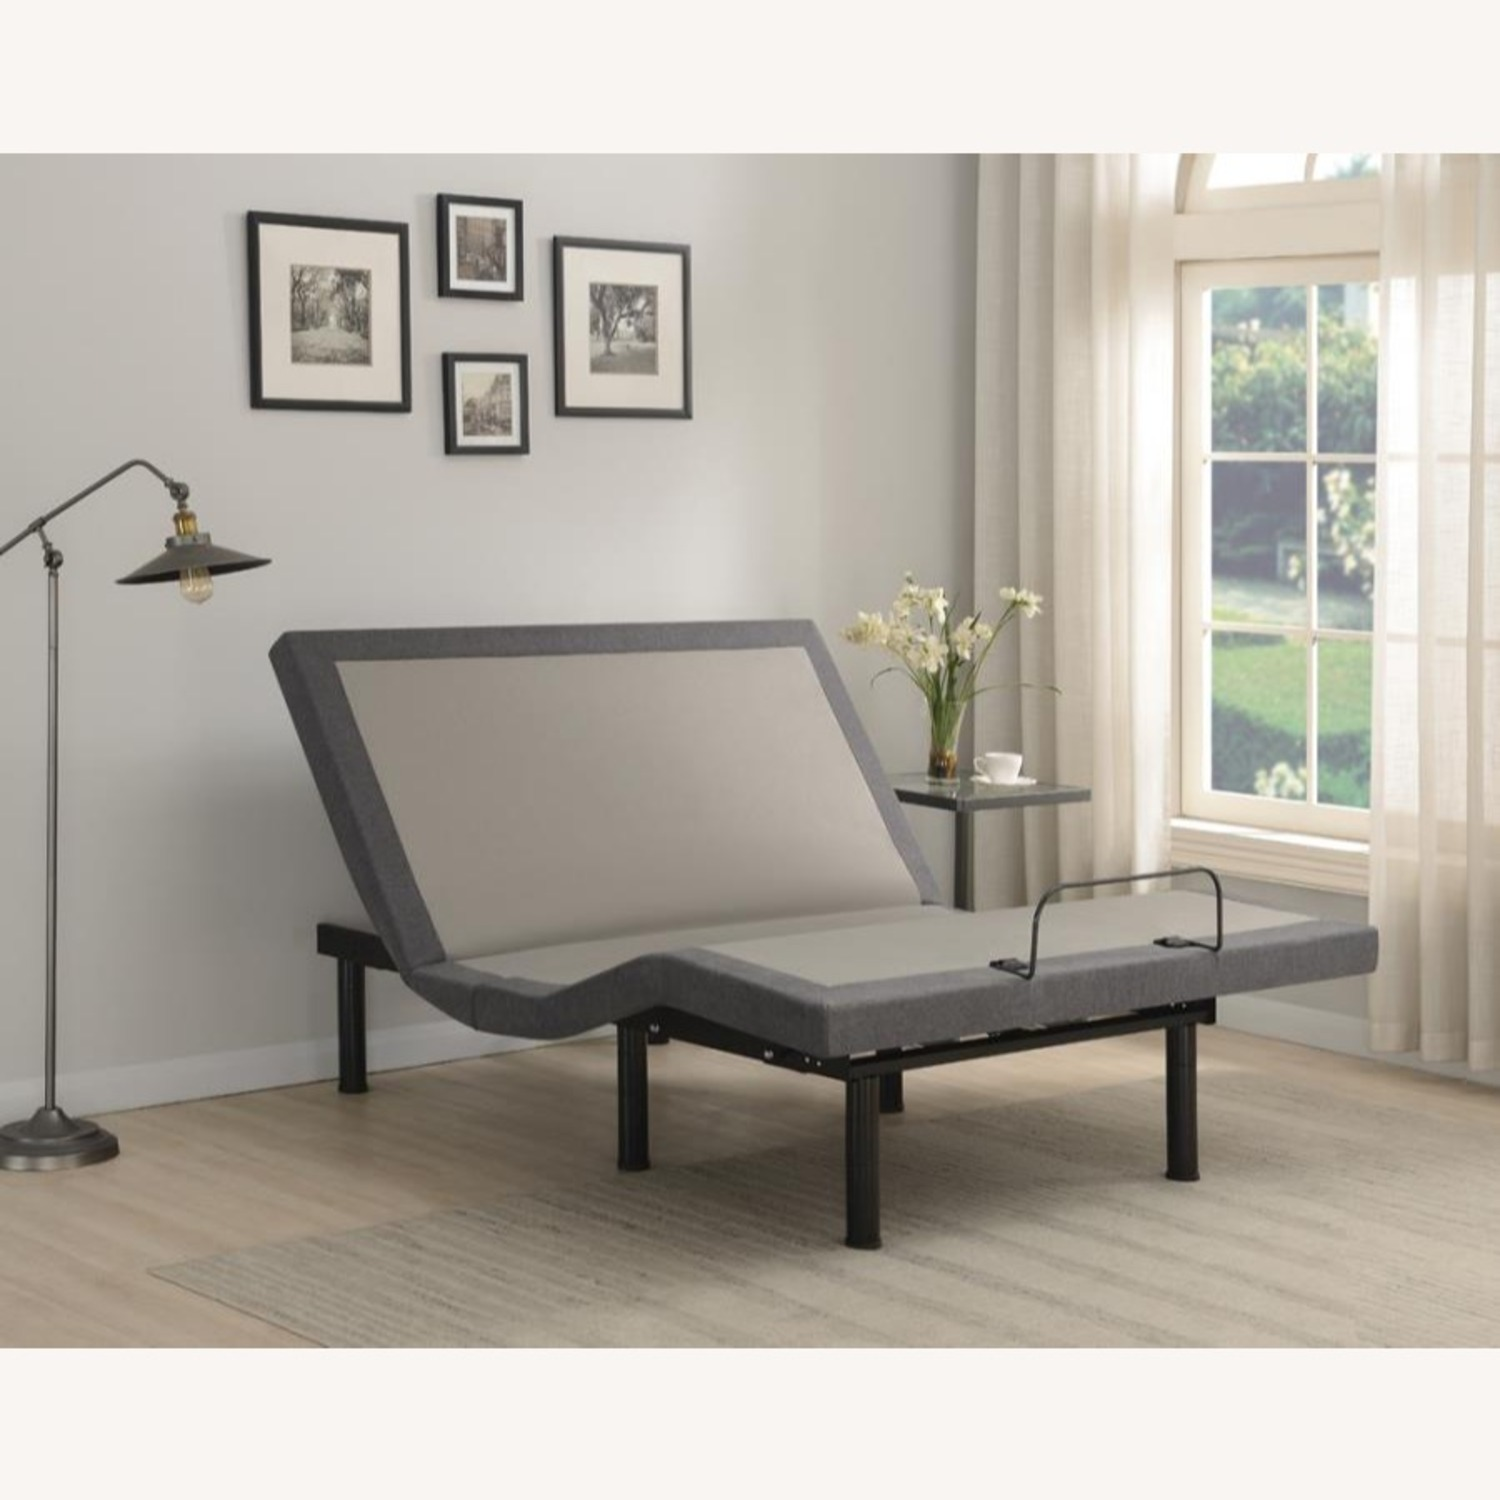 Adjustable Queen Bed W/ Dual USB Charging Station - image-9